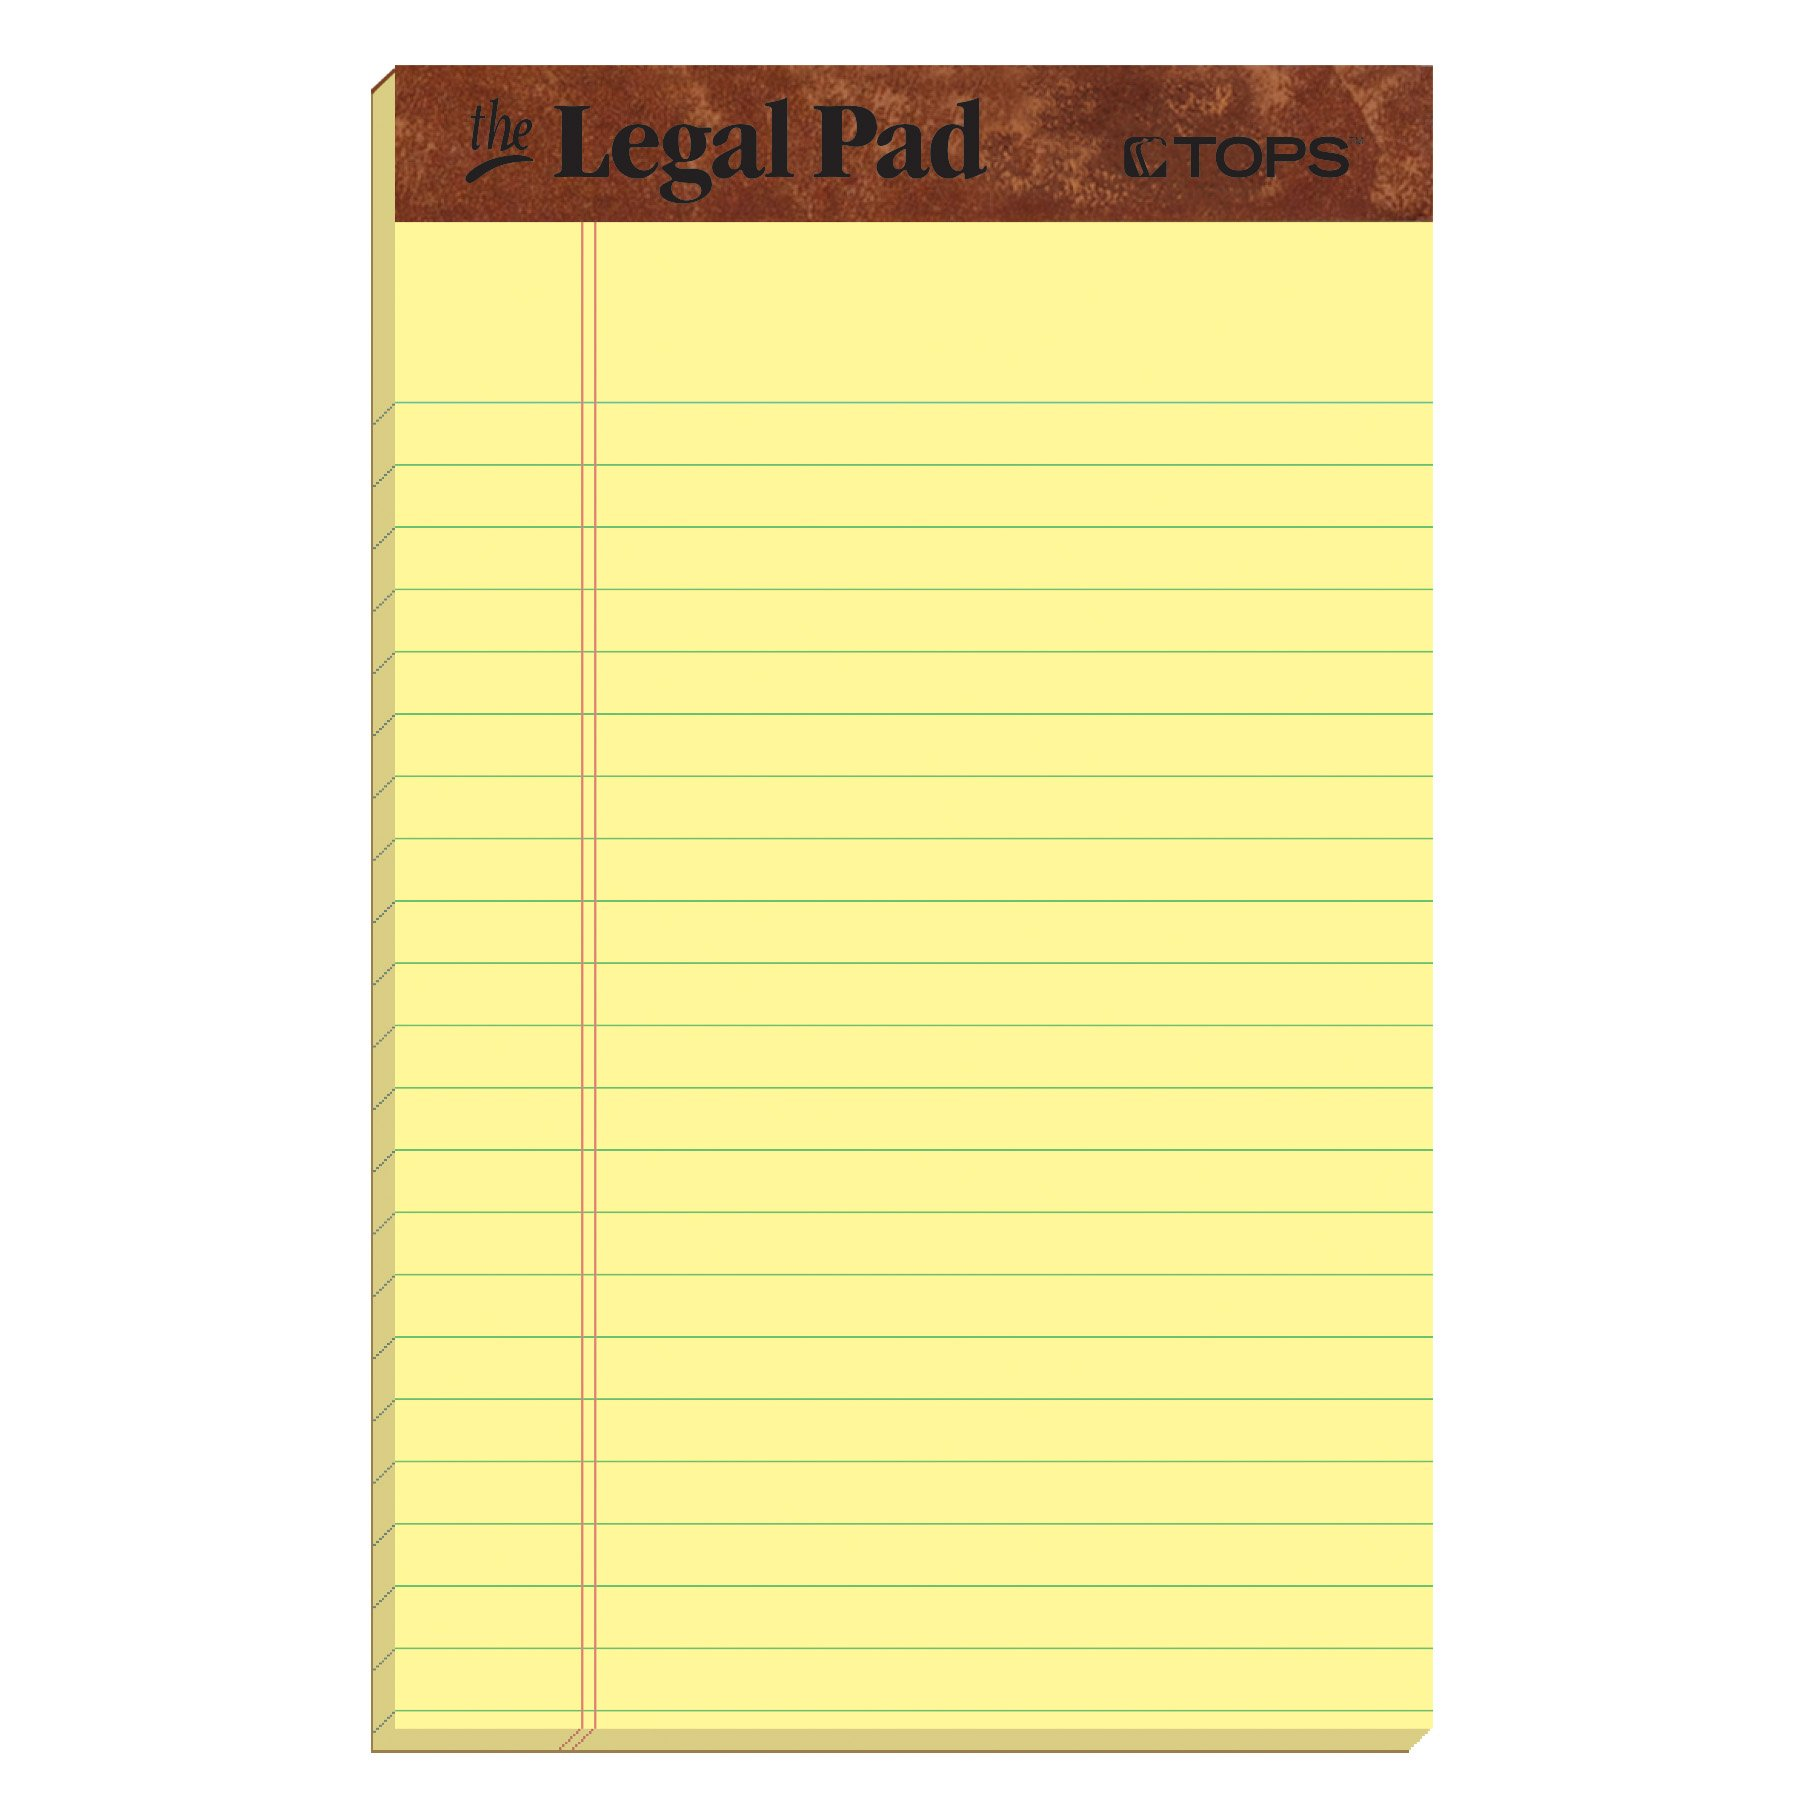 TOPS The Legal Pad Writing Pads, 5'' x 8'', Jr. Legal Rule, Canary Paper, 50 Sheets, 5 Pack (75017)